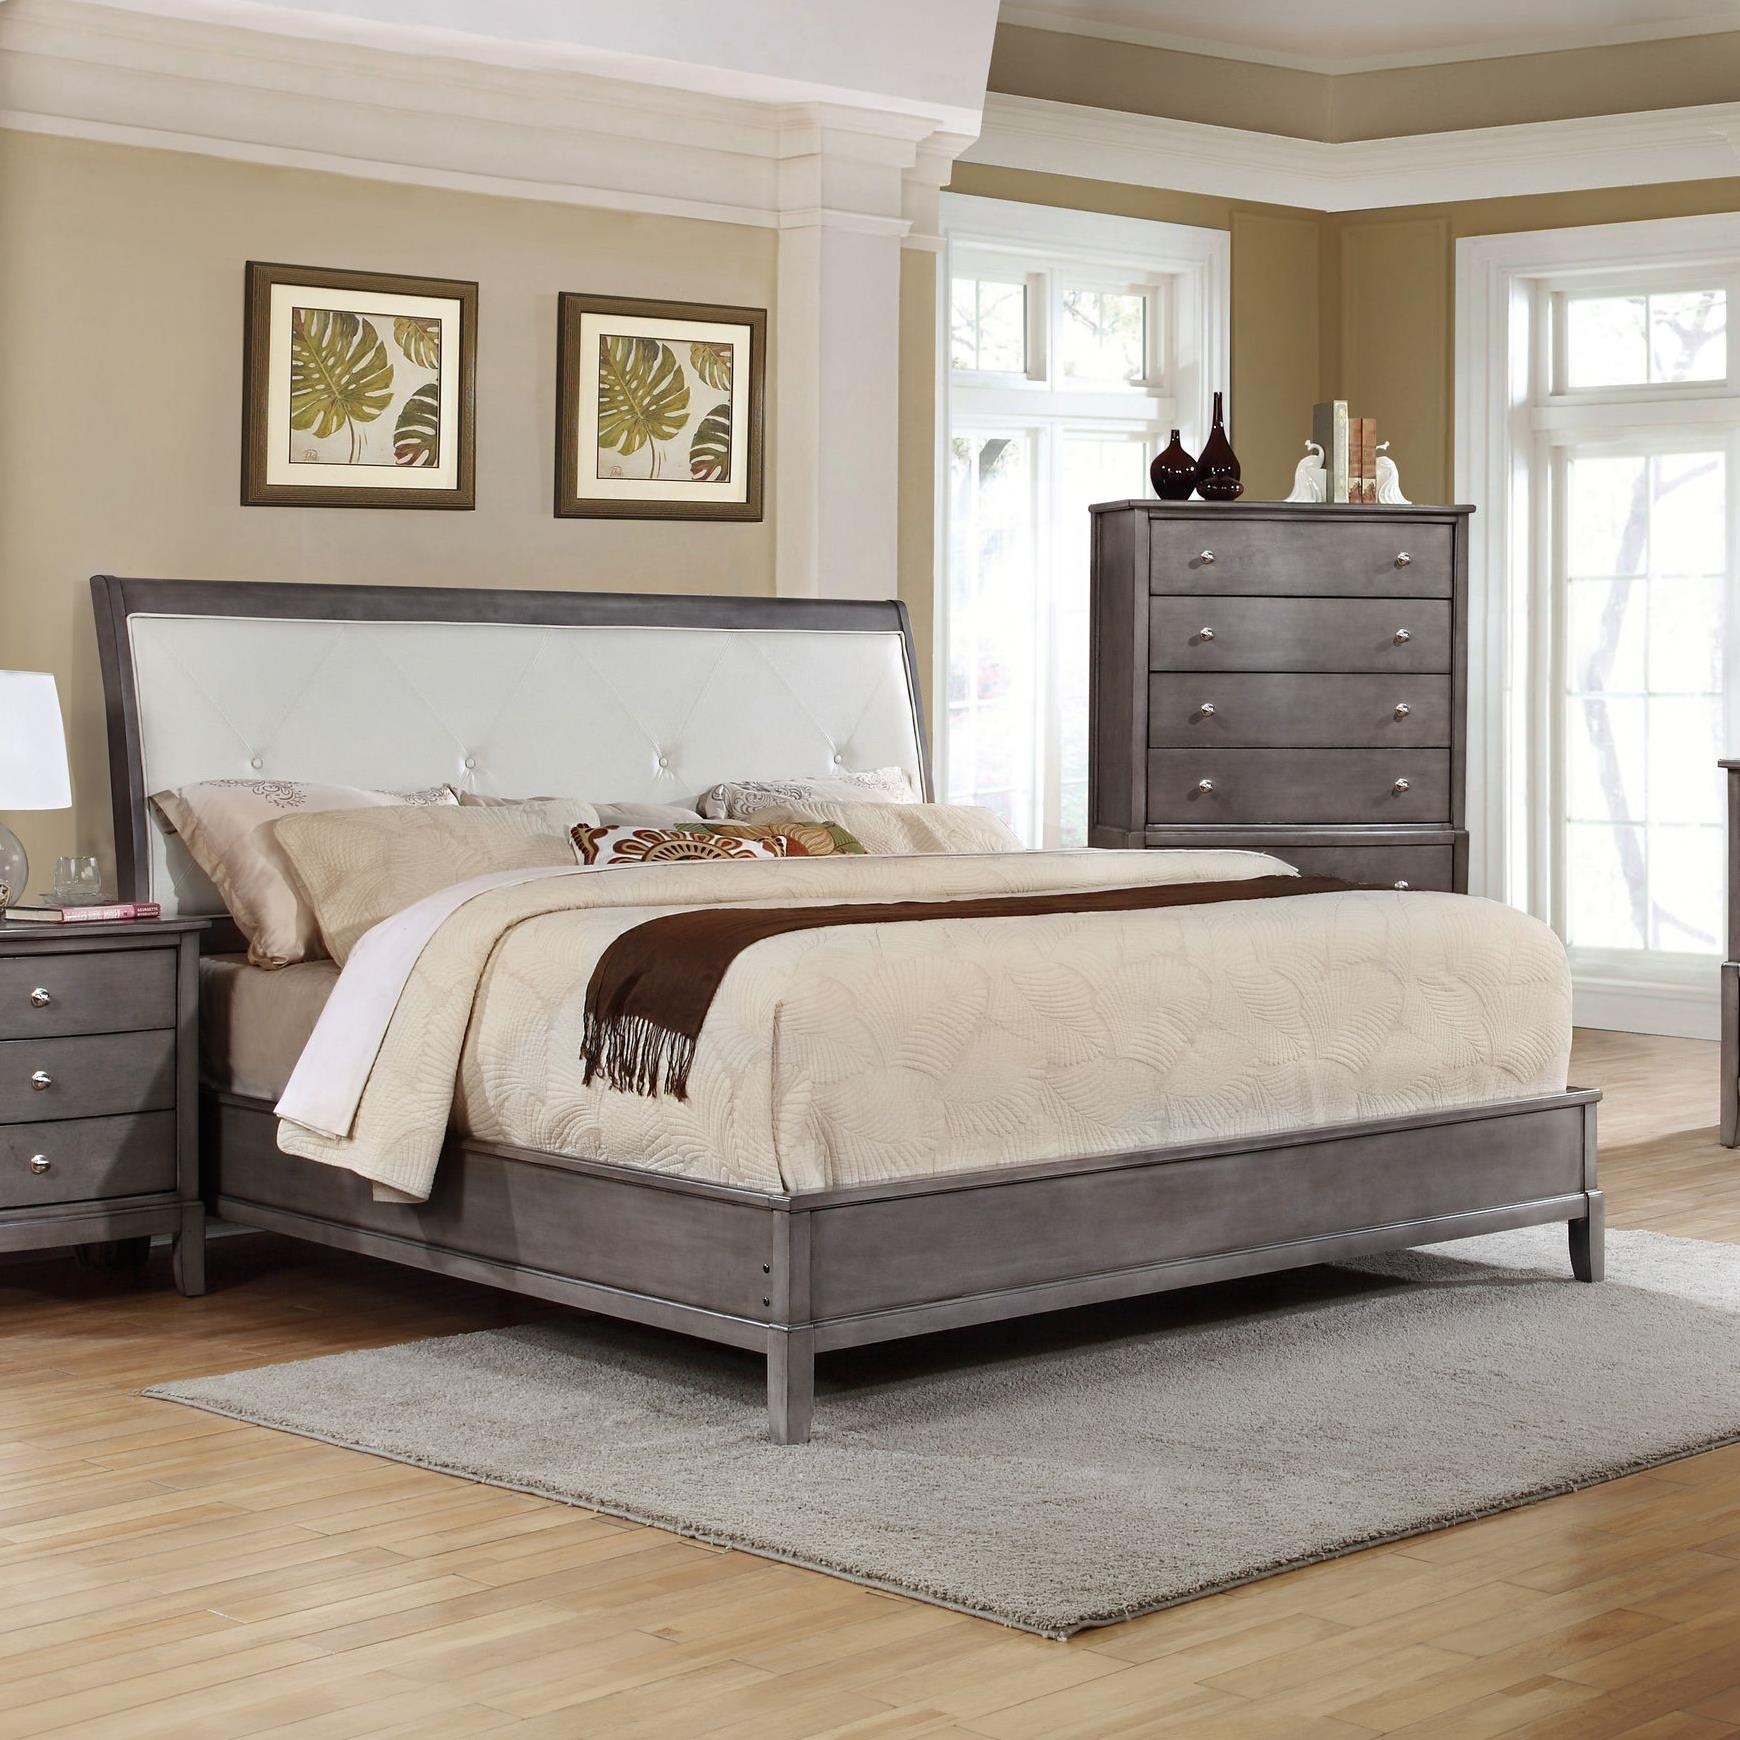 Alex Express Life 7185 King Upholstered Bed with Storage - Item Number: C7185G-KUB+BUN